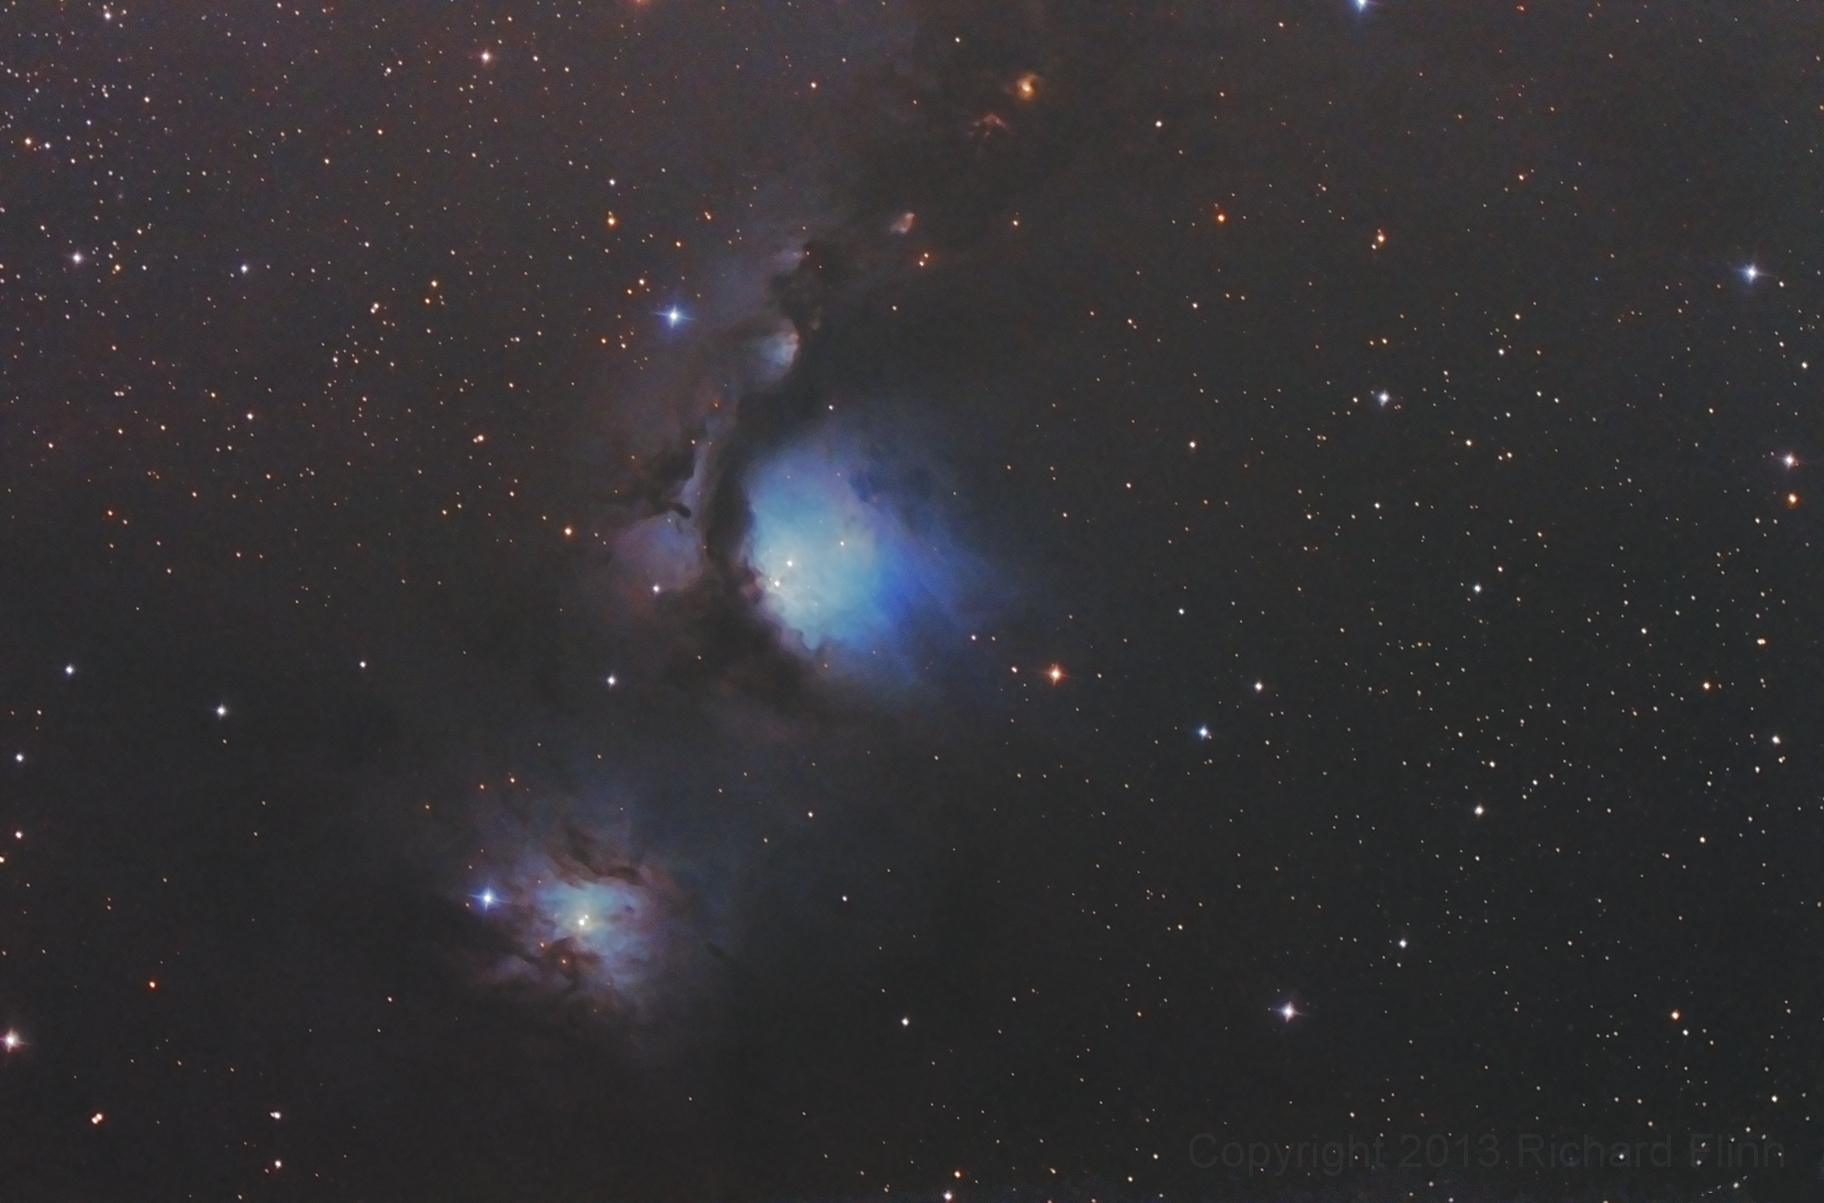 M78 - reflection nebula in the constellation Orion. M78 is the brightest diffuse reflection nebula of a group of nebulae that include NGC 2064, NGC 2067 and NGC 2071.